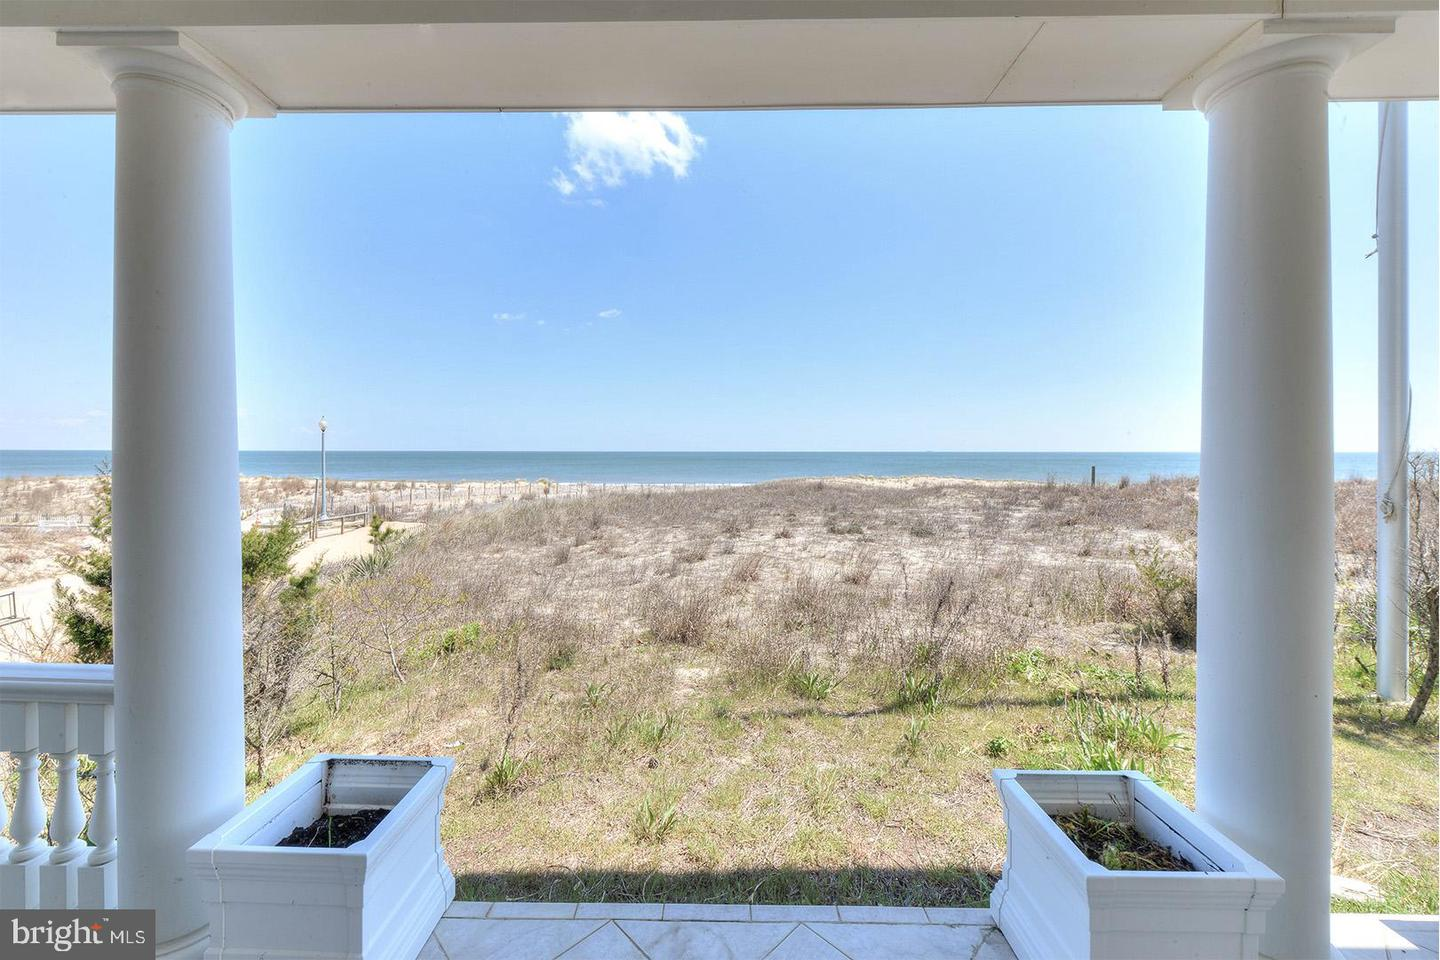 DESU159700-304100431405-2020-05-01-17-16-51 4 Prospect St | Rehoboth Beach, DE Real Estate For Sale | MLS# Desu159700  - Lee Ann Group